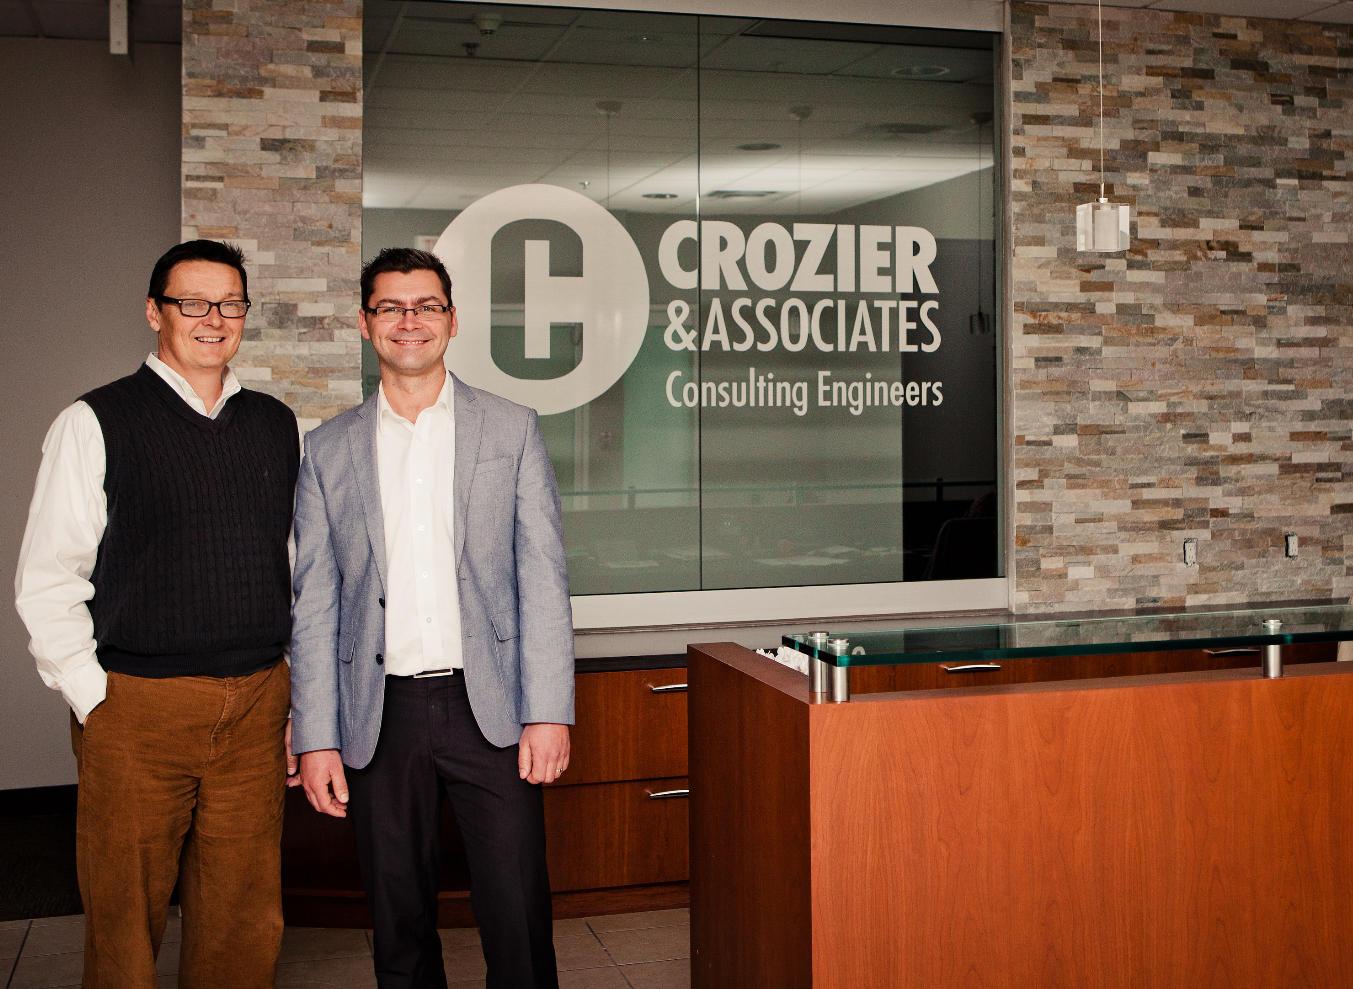 1)	Christopher Crozier, P.Eng, Principle (on left) and Nick Mocan, M.Sc., P.Eng., Associate -  in the Crozier & Associates reception lobby at 2800 High Point